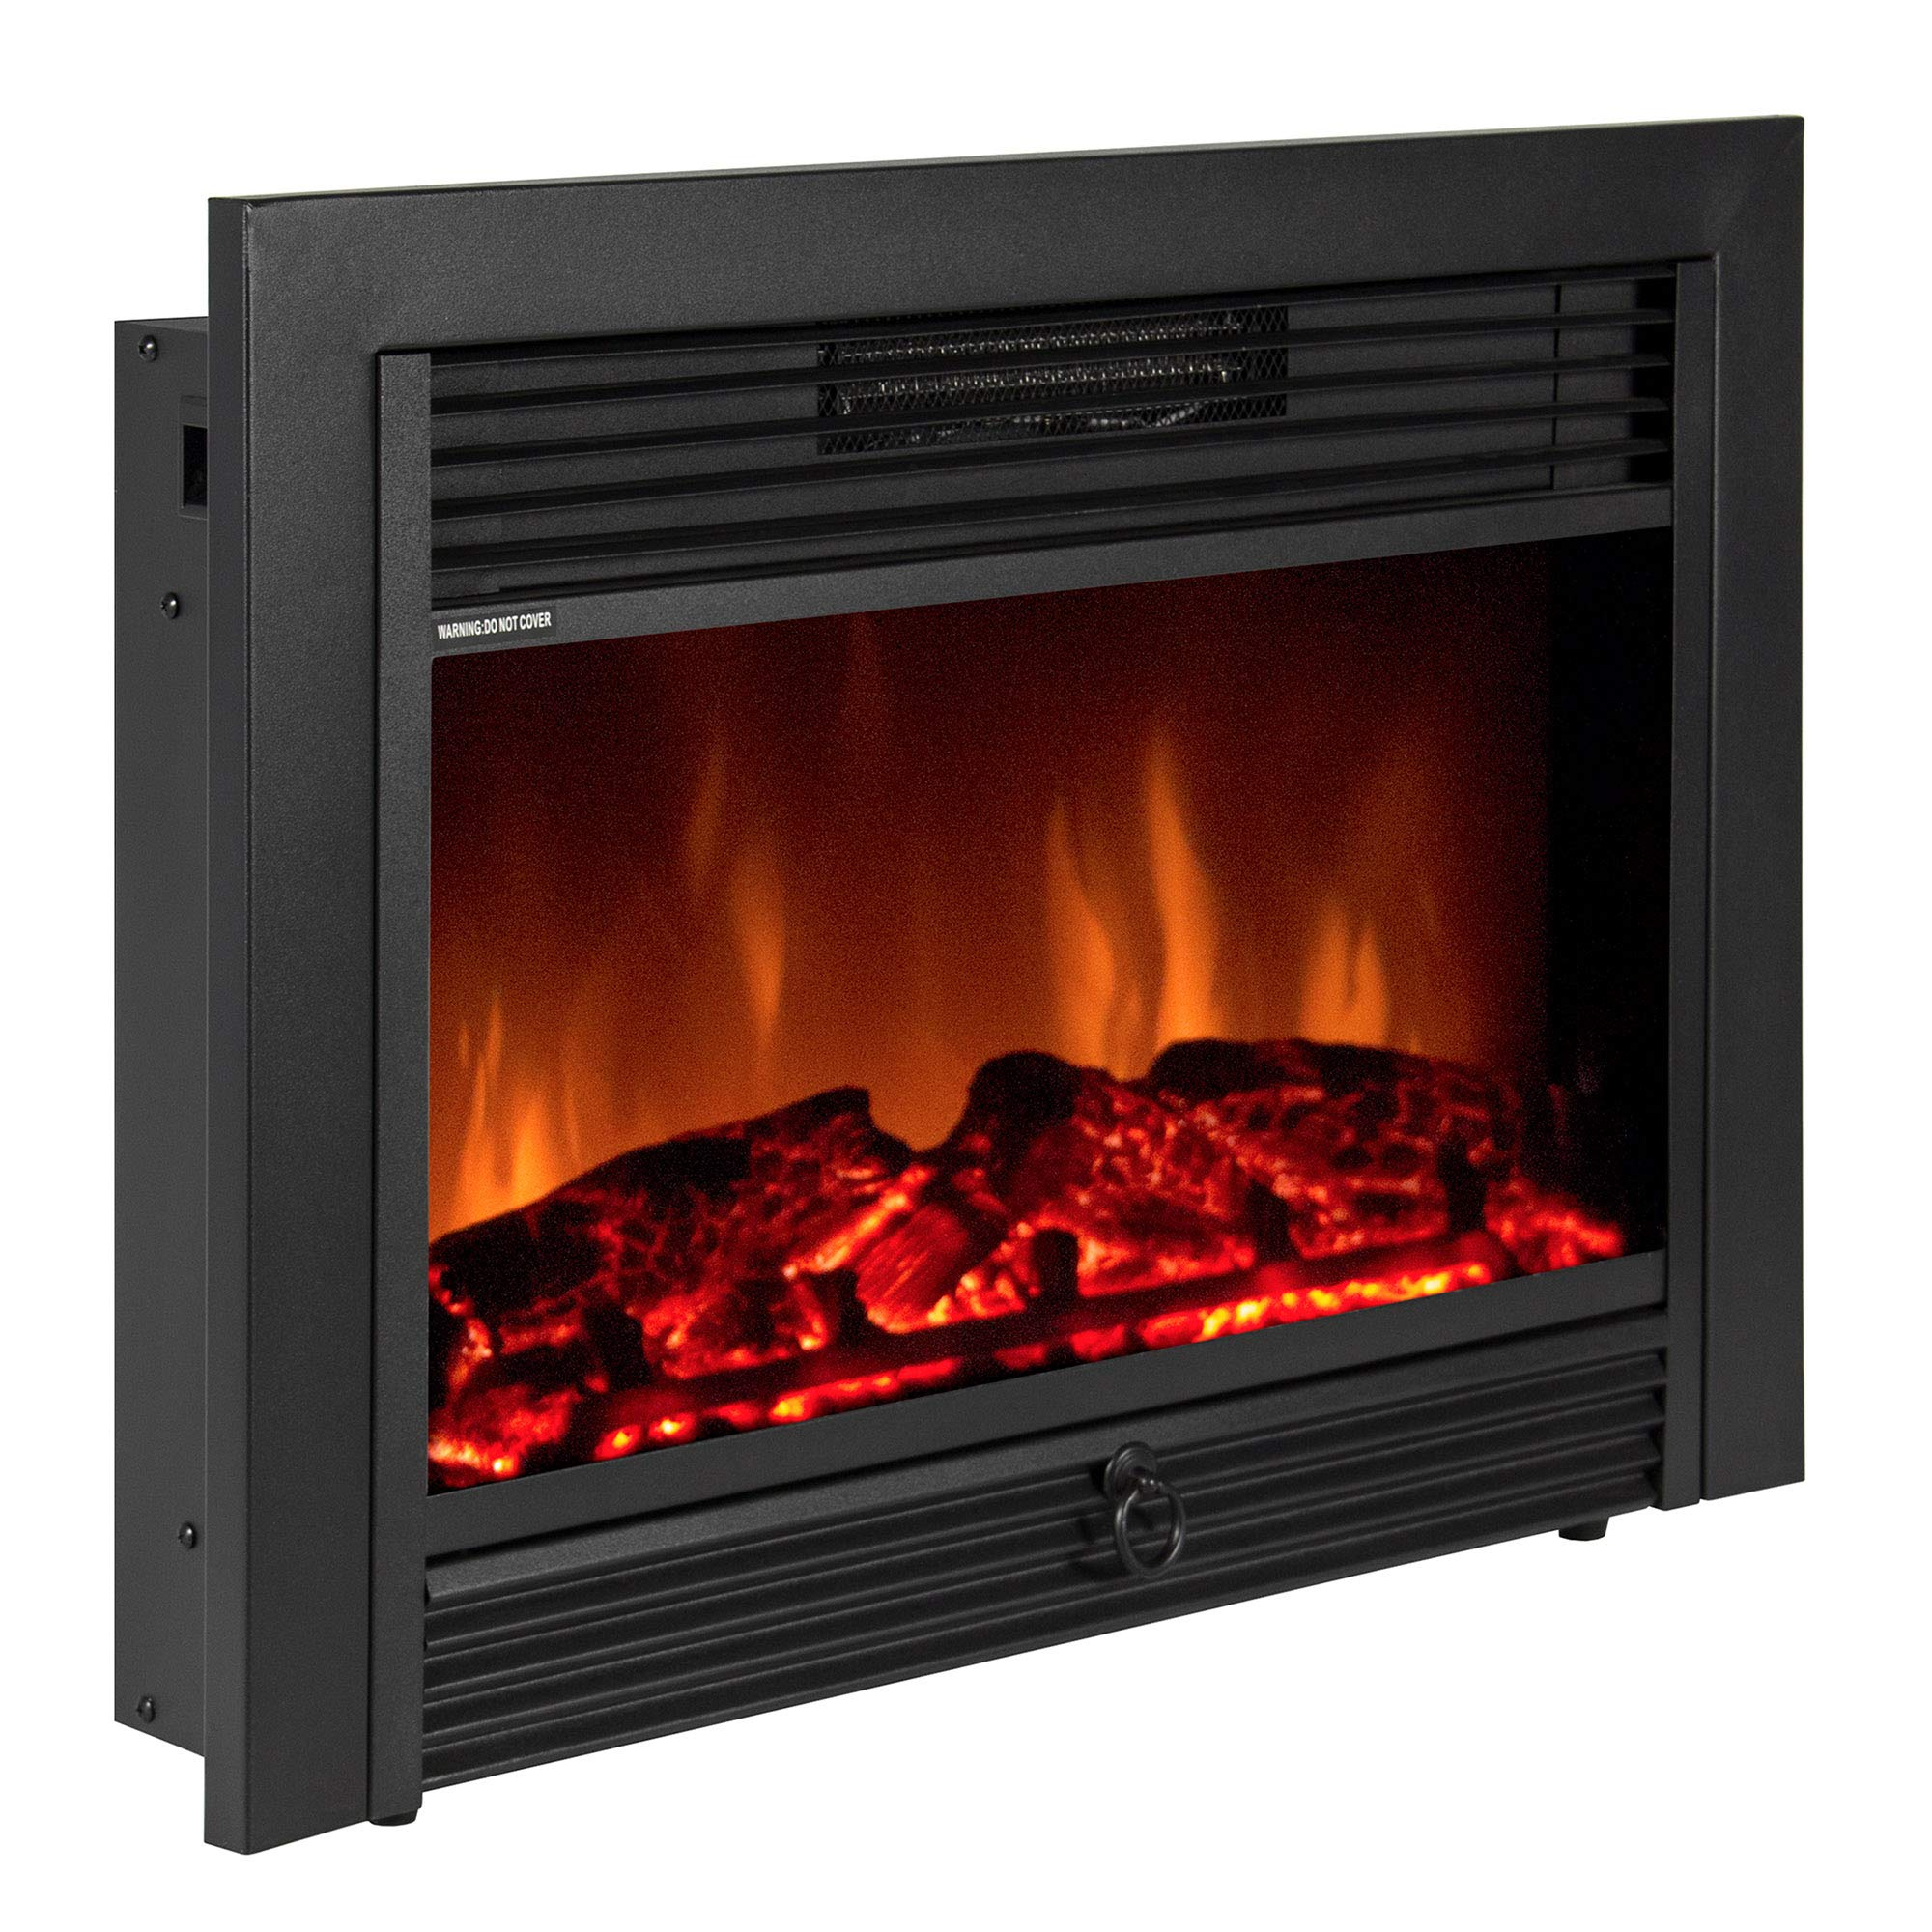 Best Choice Products VD-51075WH Embedded Fireplace Electric Insert Heater Glass View Log Flame Remote Home, 28.5'' by Best Choice Products